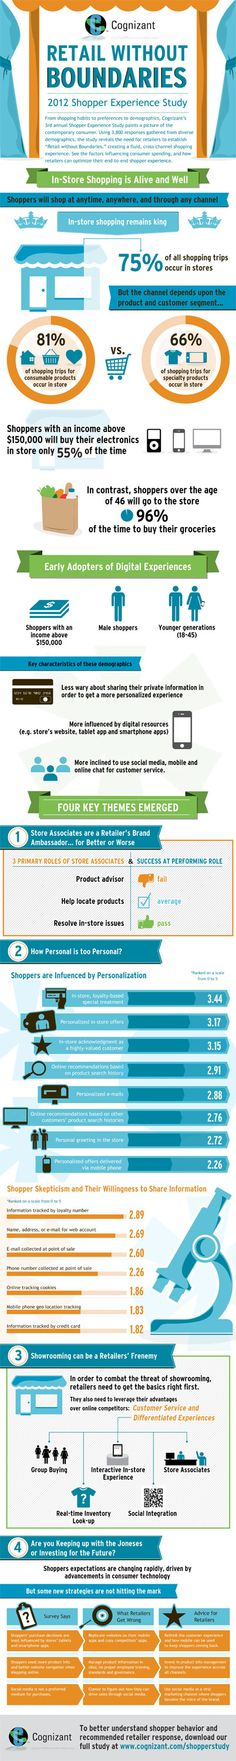 RIS/Cognizant Shopper Experience Study - How to Create the Stores that Shoppers Want